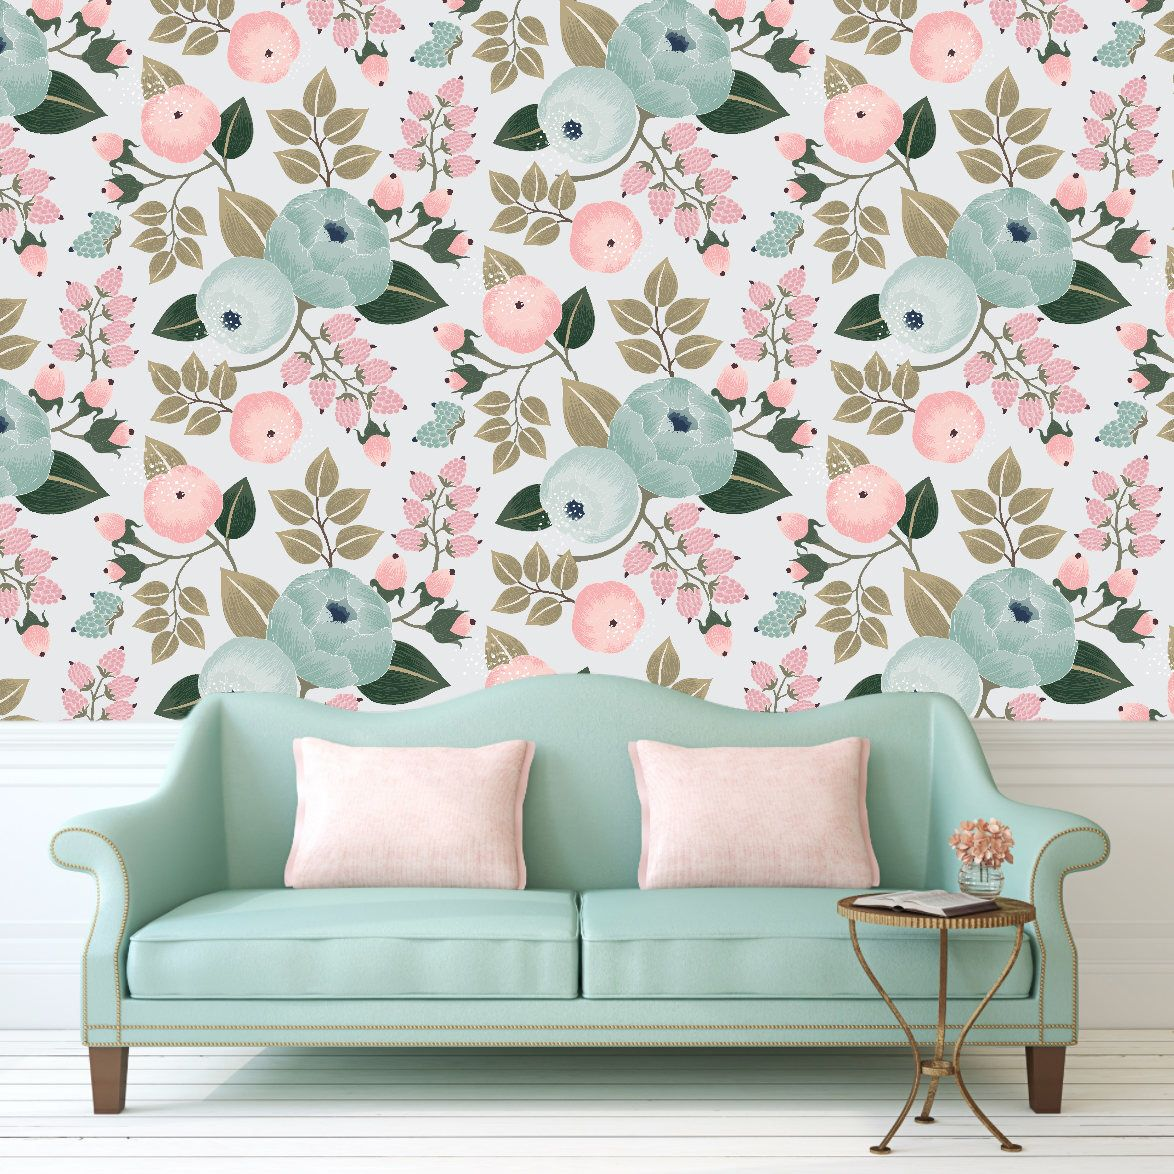 Pin By Constance Perkins On New Beginnings Removable Wallpaper Peelable Wallpaper Baby Girl Wallpaper